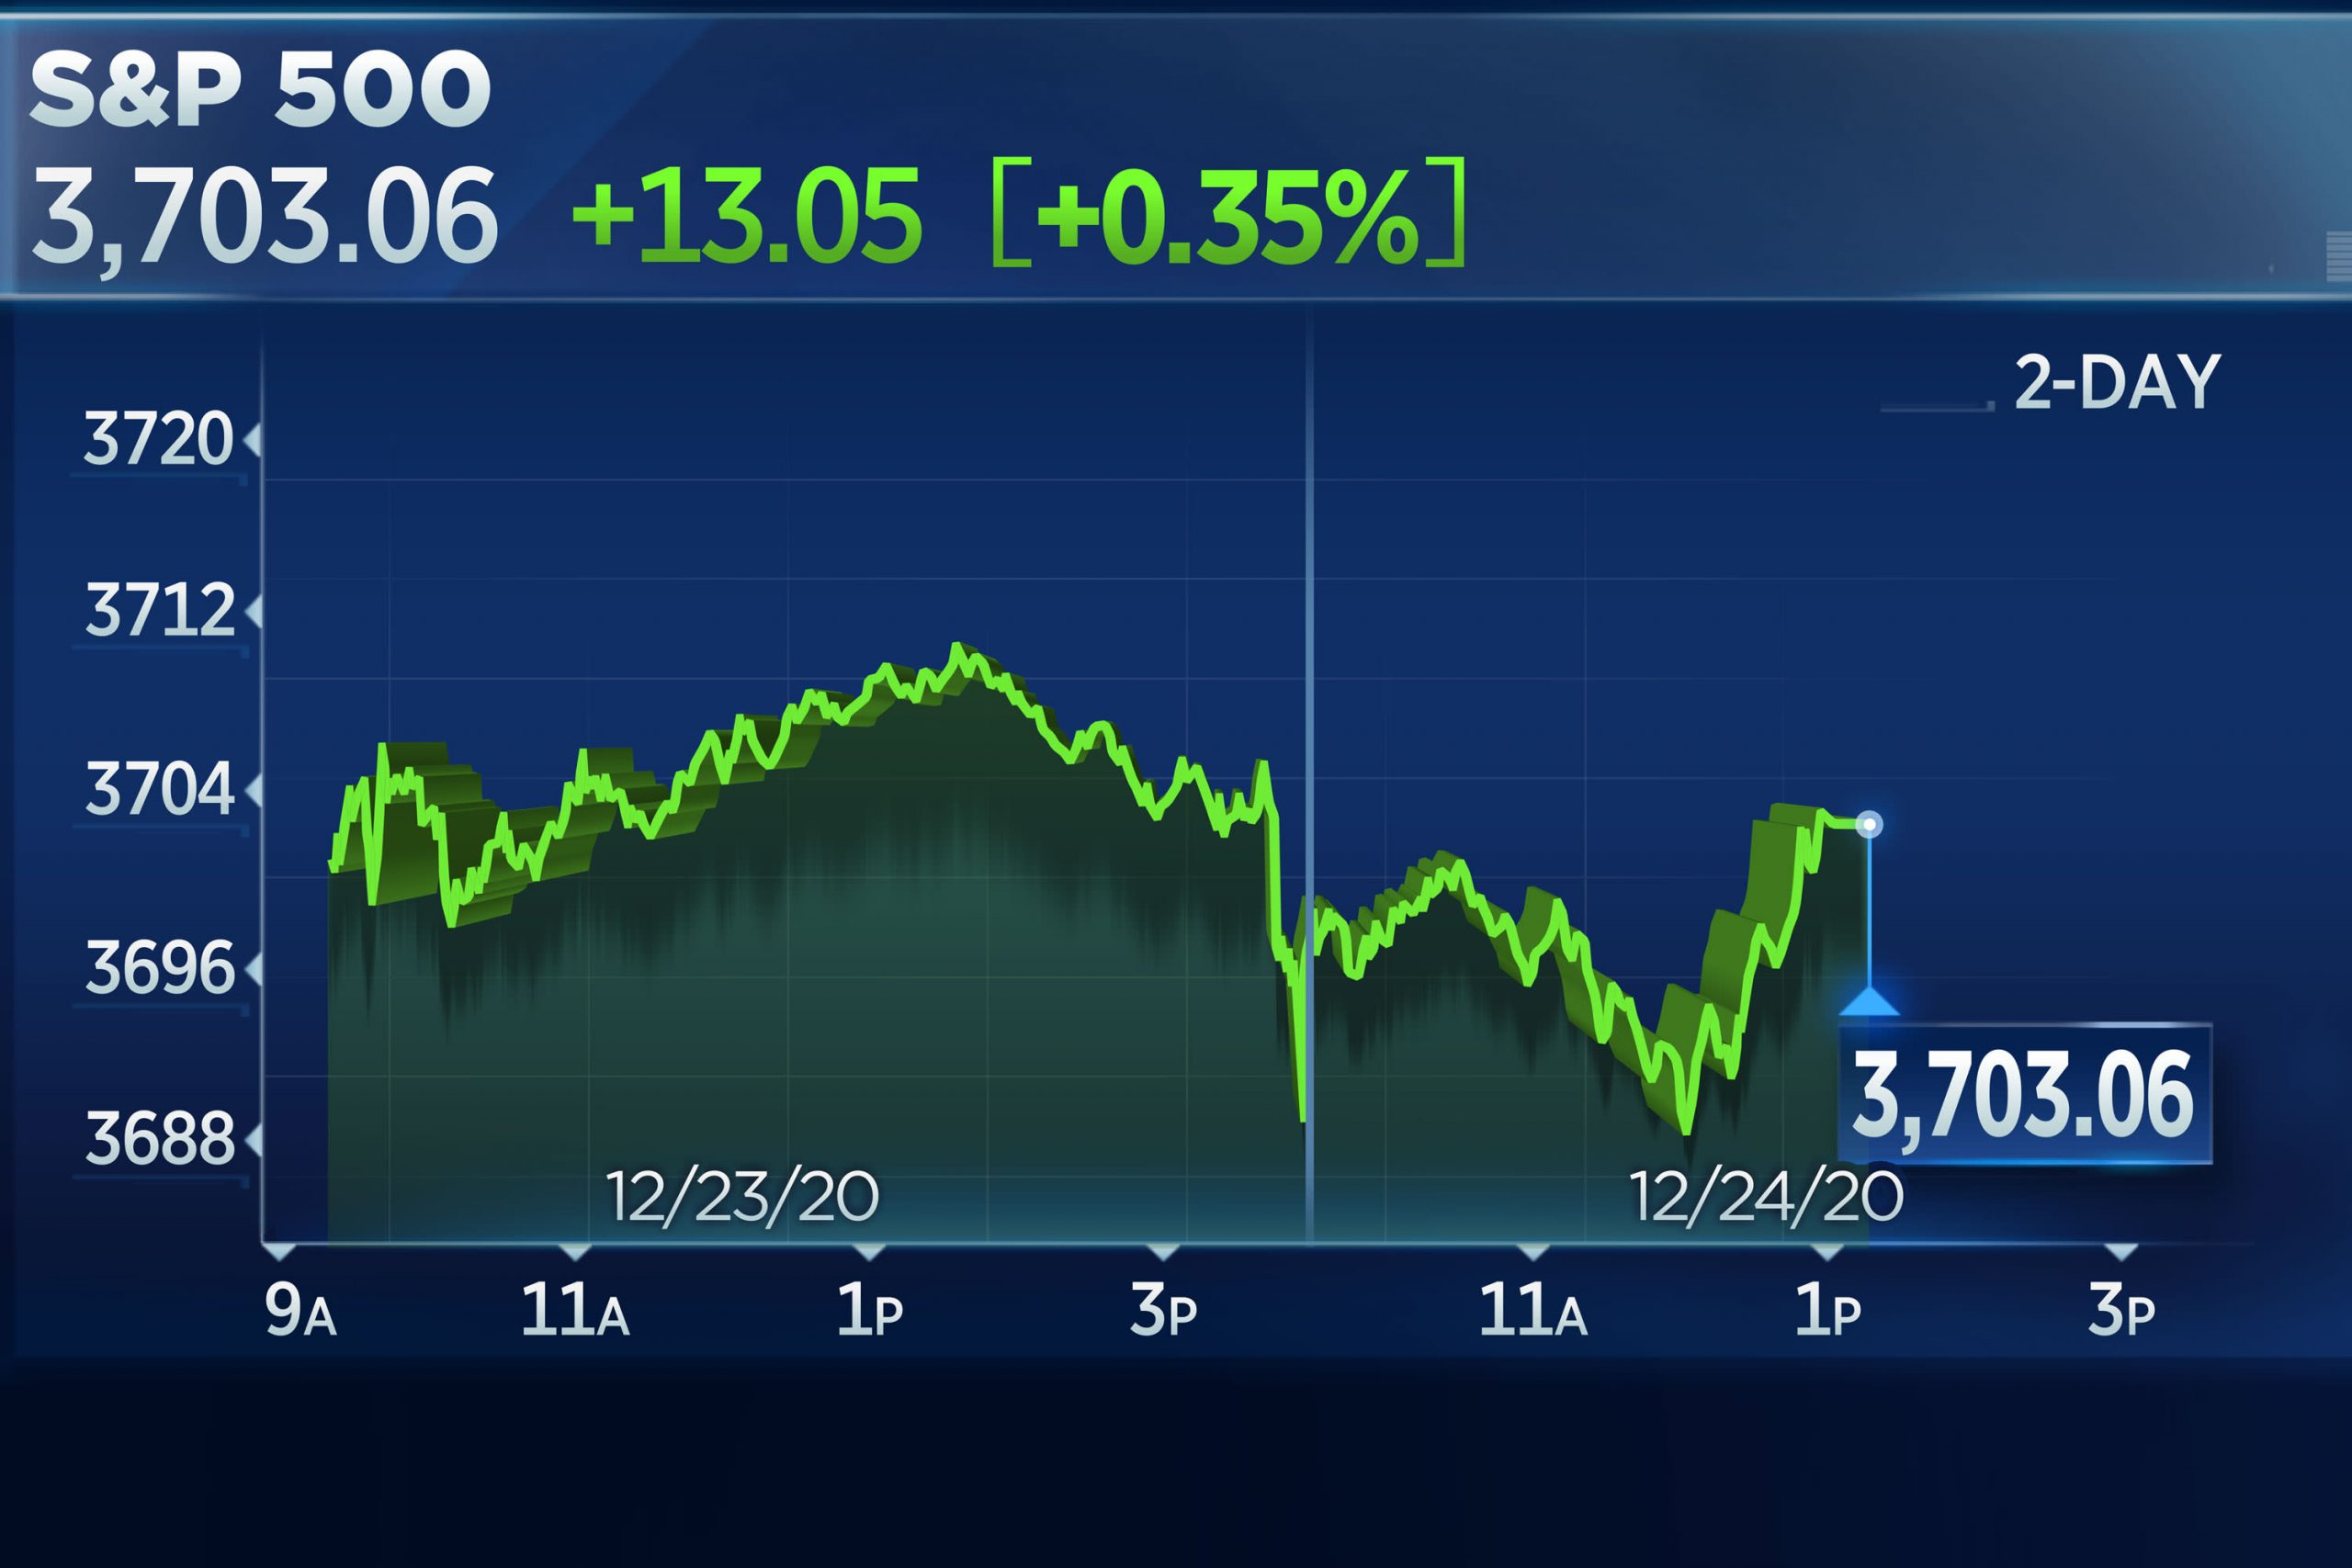 S&P 500 ekes out a small gain for the quiet holiday session